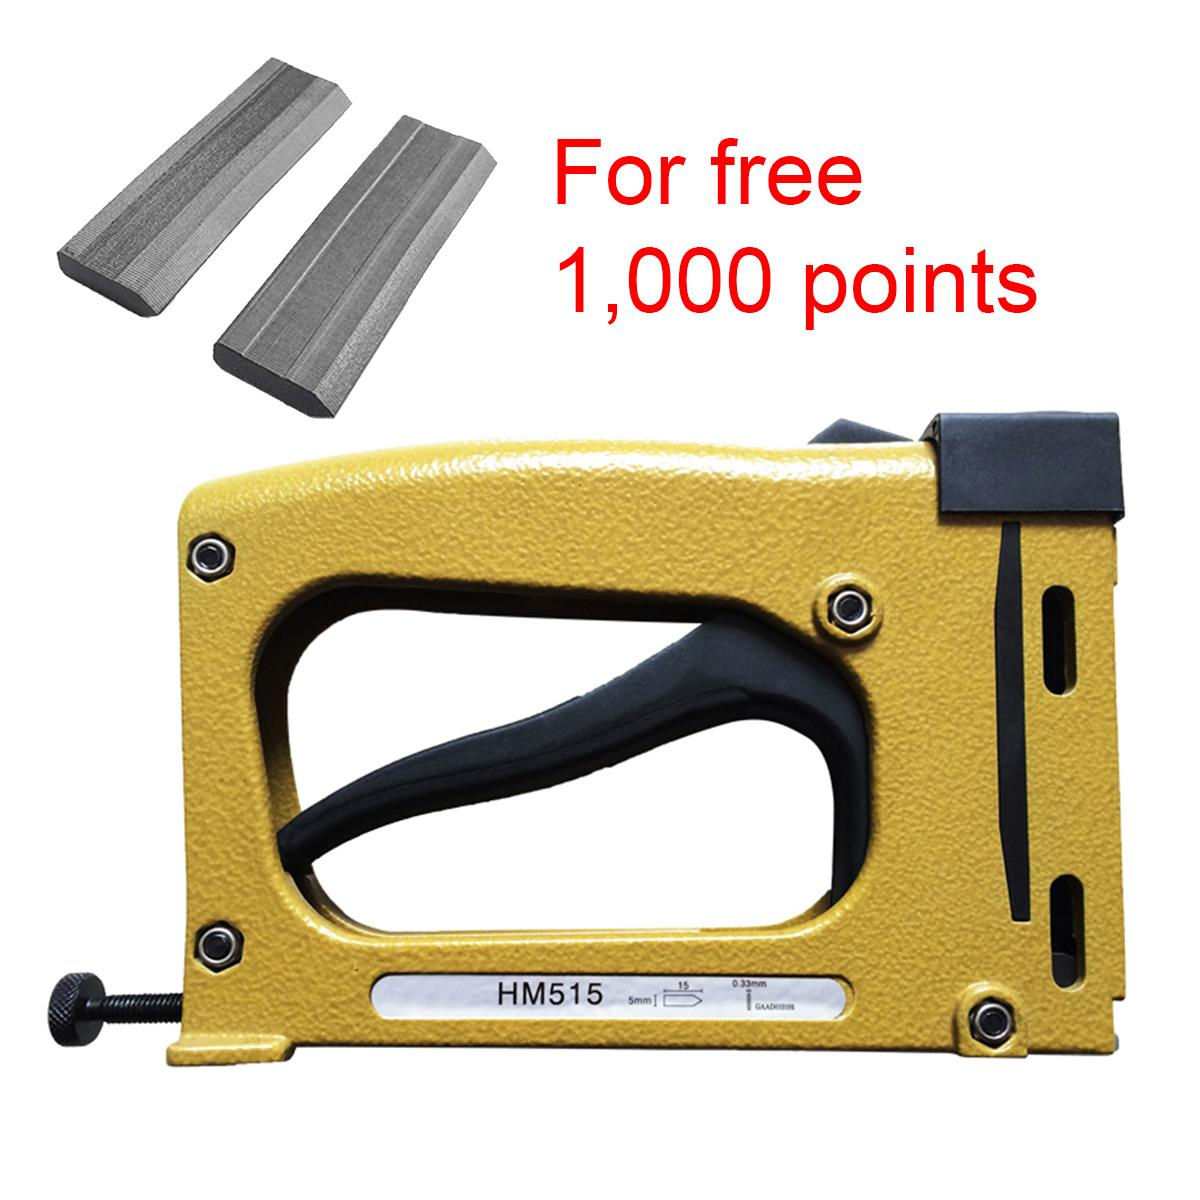 Manual Metal Point Driver Stapler Picture Framing Tool + 1000Pcs Points Point Driver Stapler Picture Framing Tool Kit DurableManual Metal Point Driver Stapler Picture Framing Tool + 1000Pcs Points Point Driver Stapler Picture Framing Tool Kit Durable